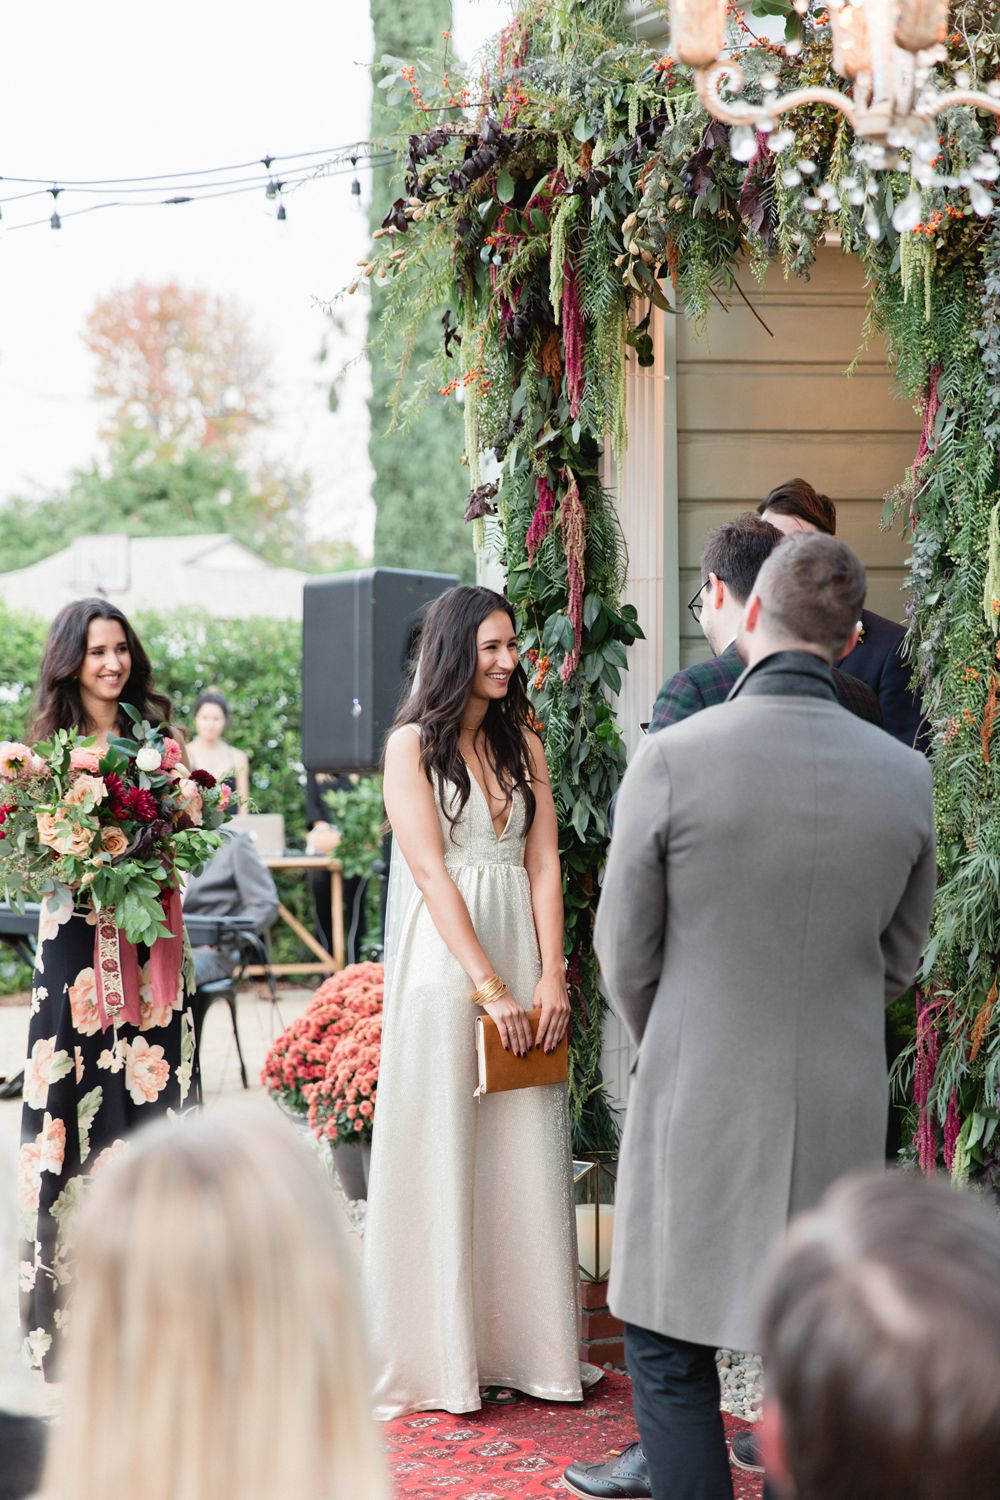 Stylish AtHome Wedding in LA Photographed by Max